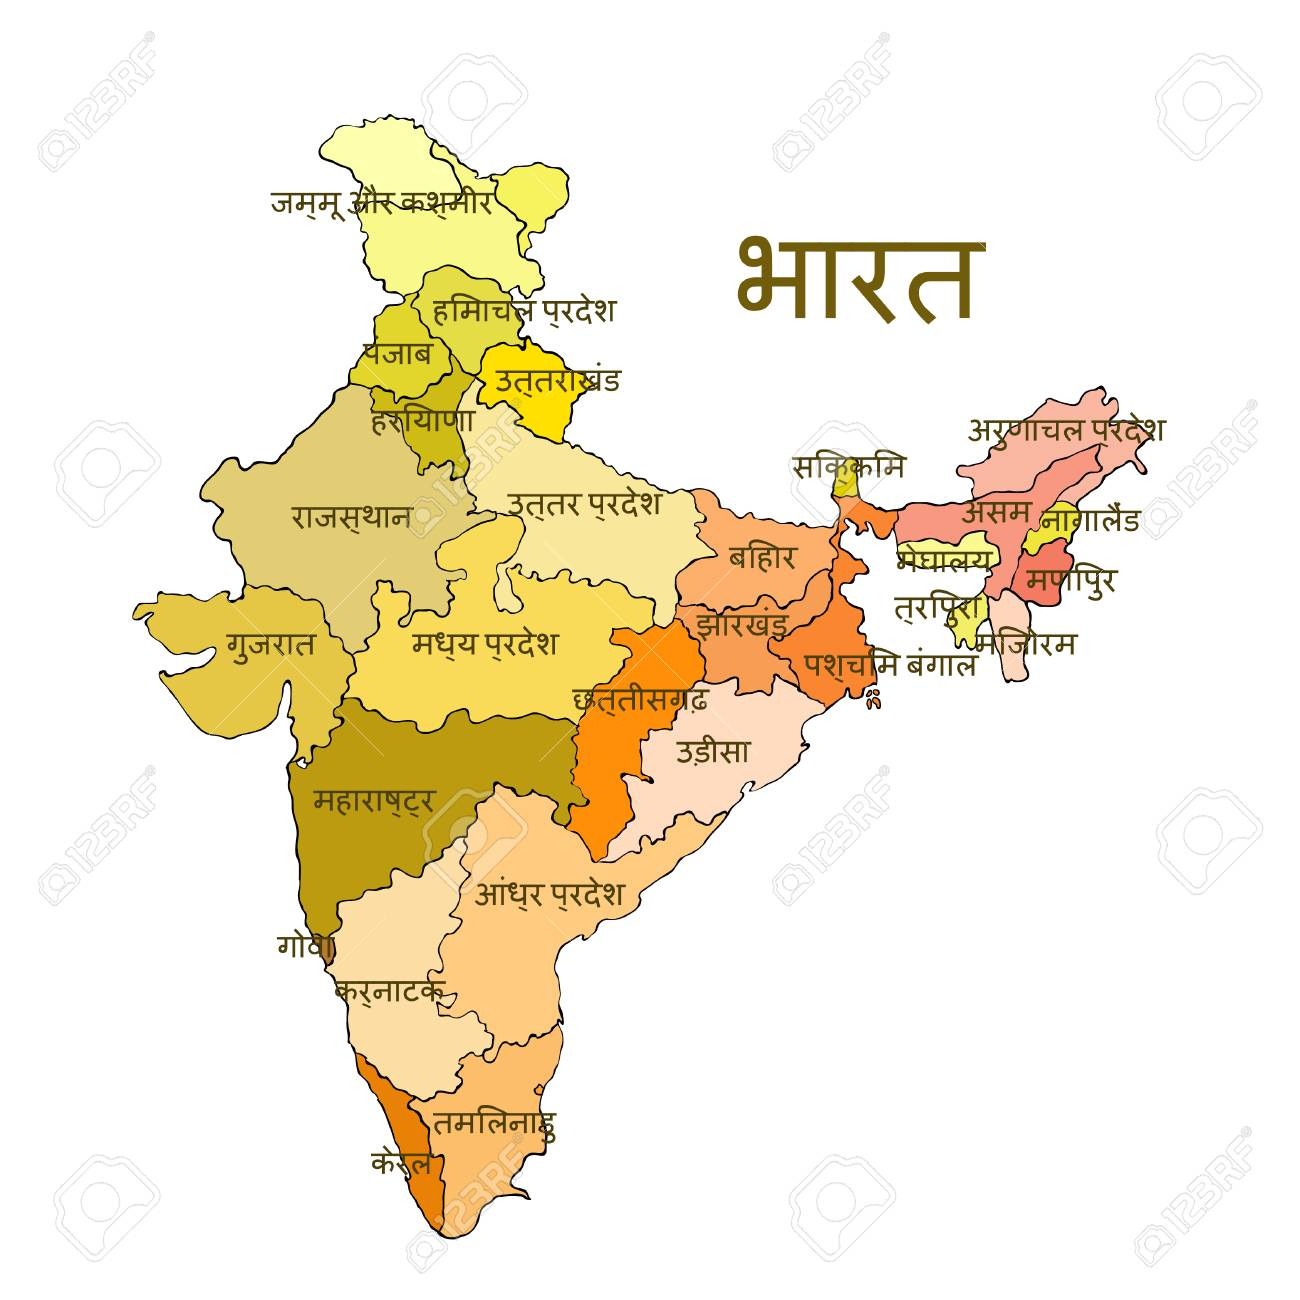 Map of the division in indium states in Hindi vector illustration India Hindi Map on india cities map, india map history, india map mumbai, india map bangla, india map asia, india map indo-gangetic plain, india map gujarat, india map states and rivers, india map art, india map hinduism, india map delhi, india map geography, india map in tamil, india map urdu, india map maharashtra, india map rajasthan, india map punjabi, india map english, india map nepal, india map state names,